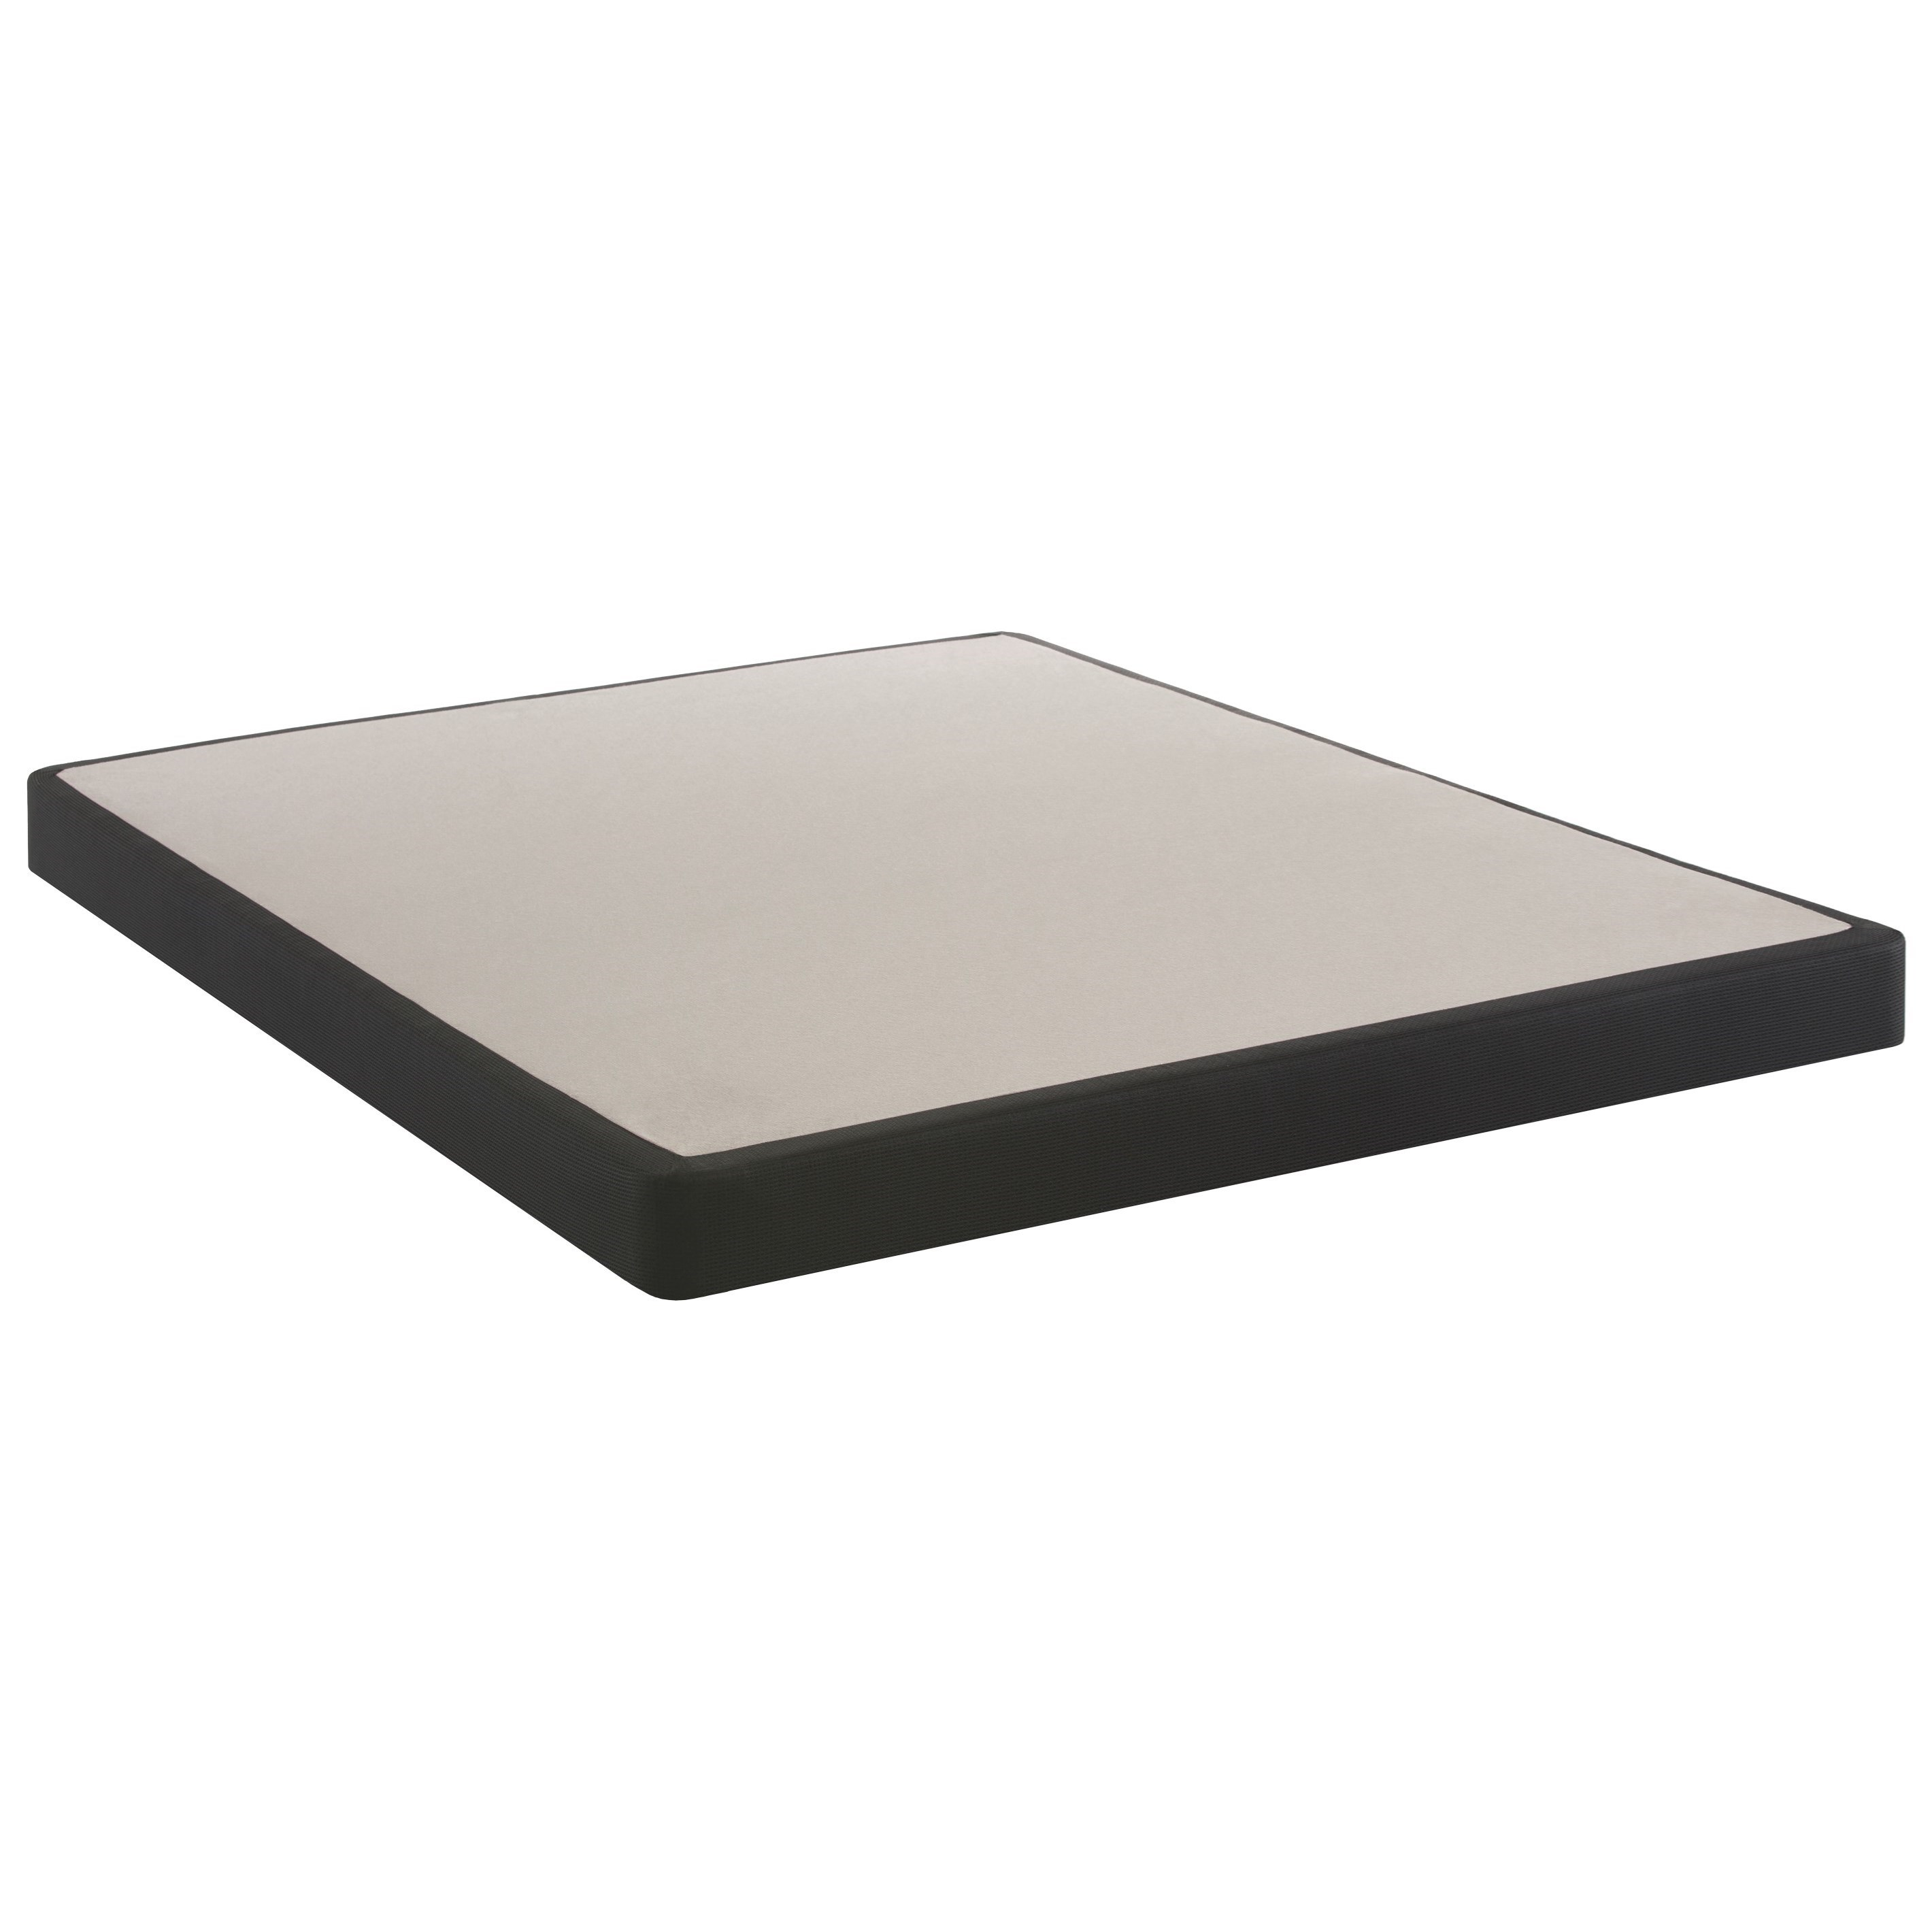 "2017 StableSupport Foundations Split Queen Low Profile Base 5"" Height by Sealy at Novello Home Furnishings"